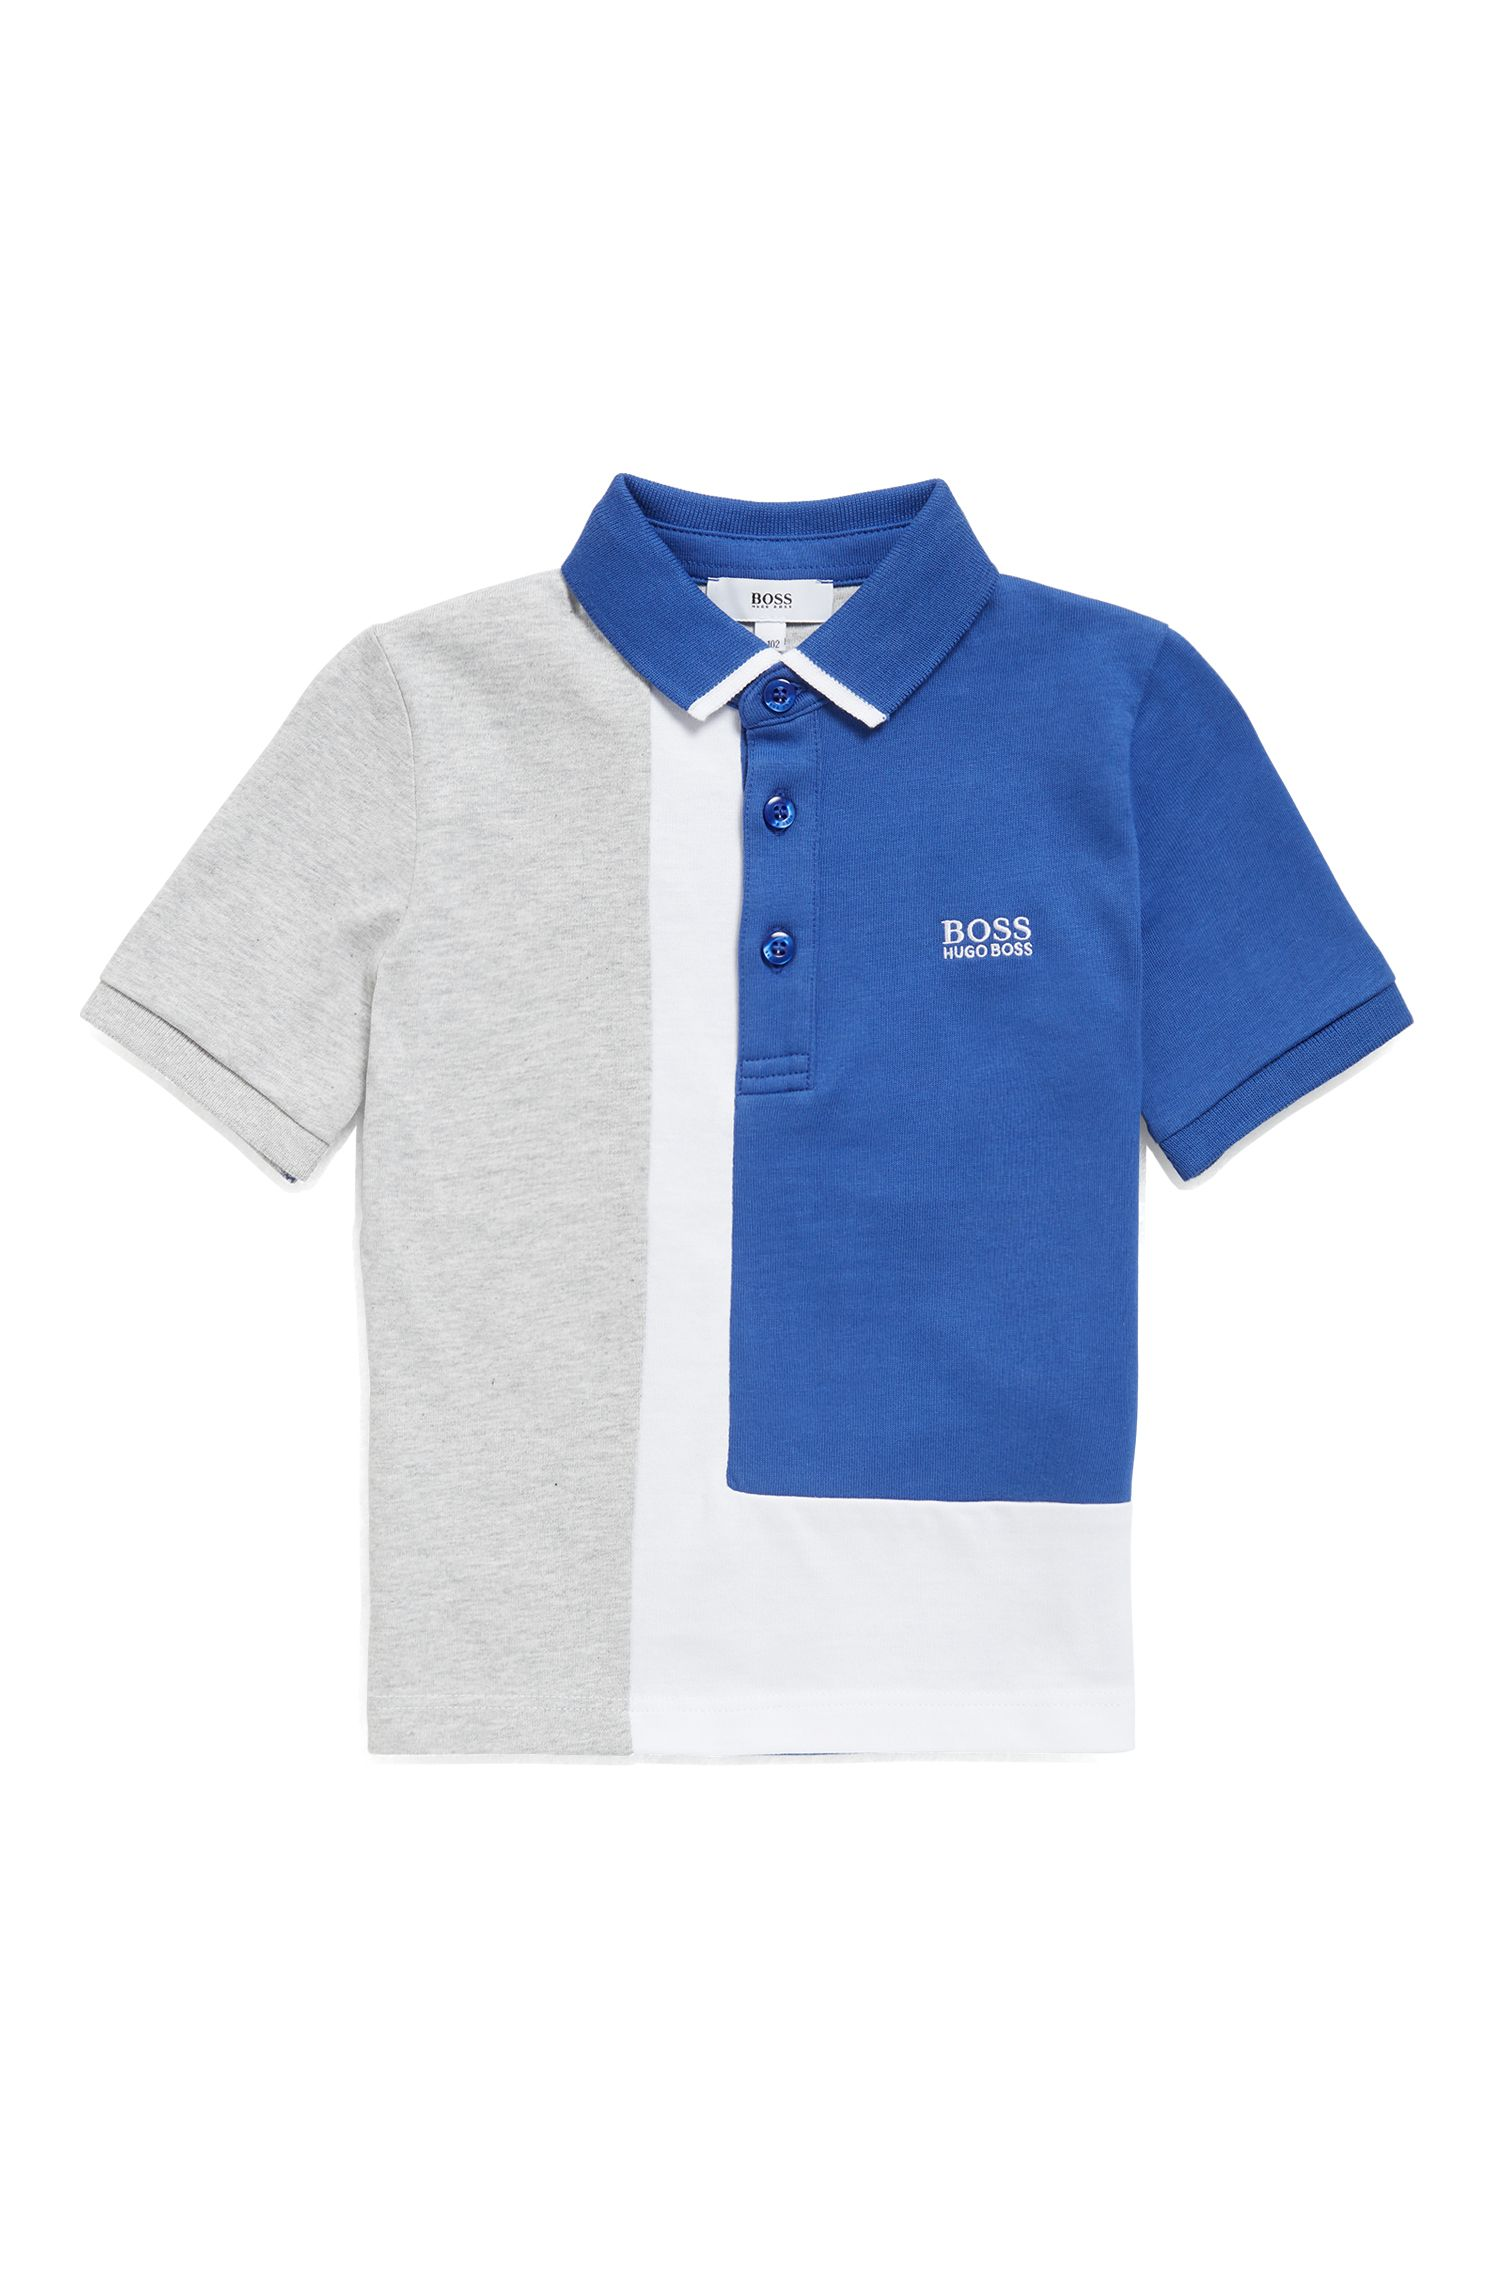 Polo pour enfant en jersey simple de coton